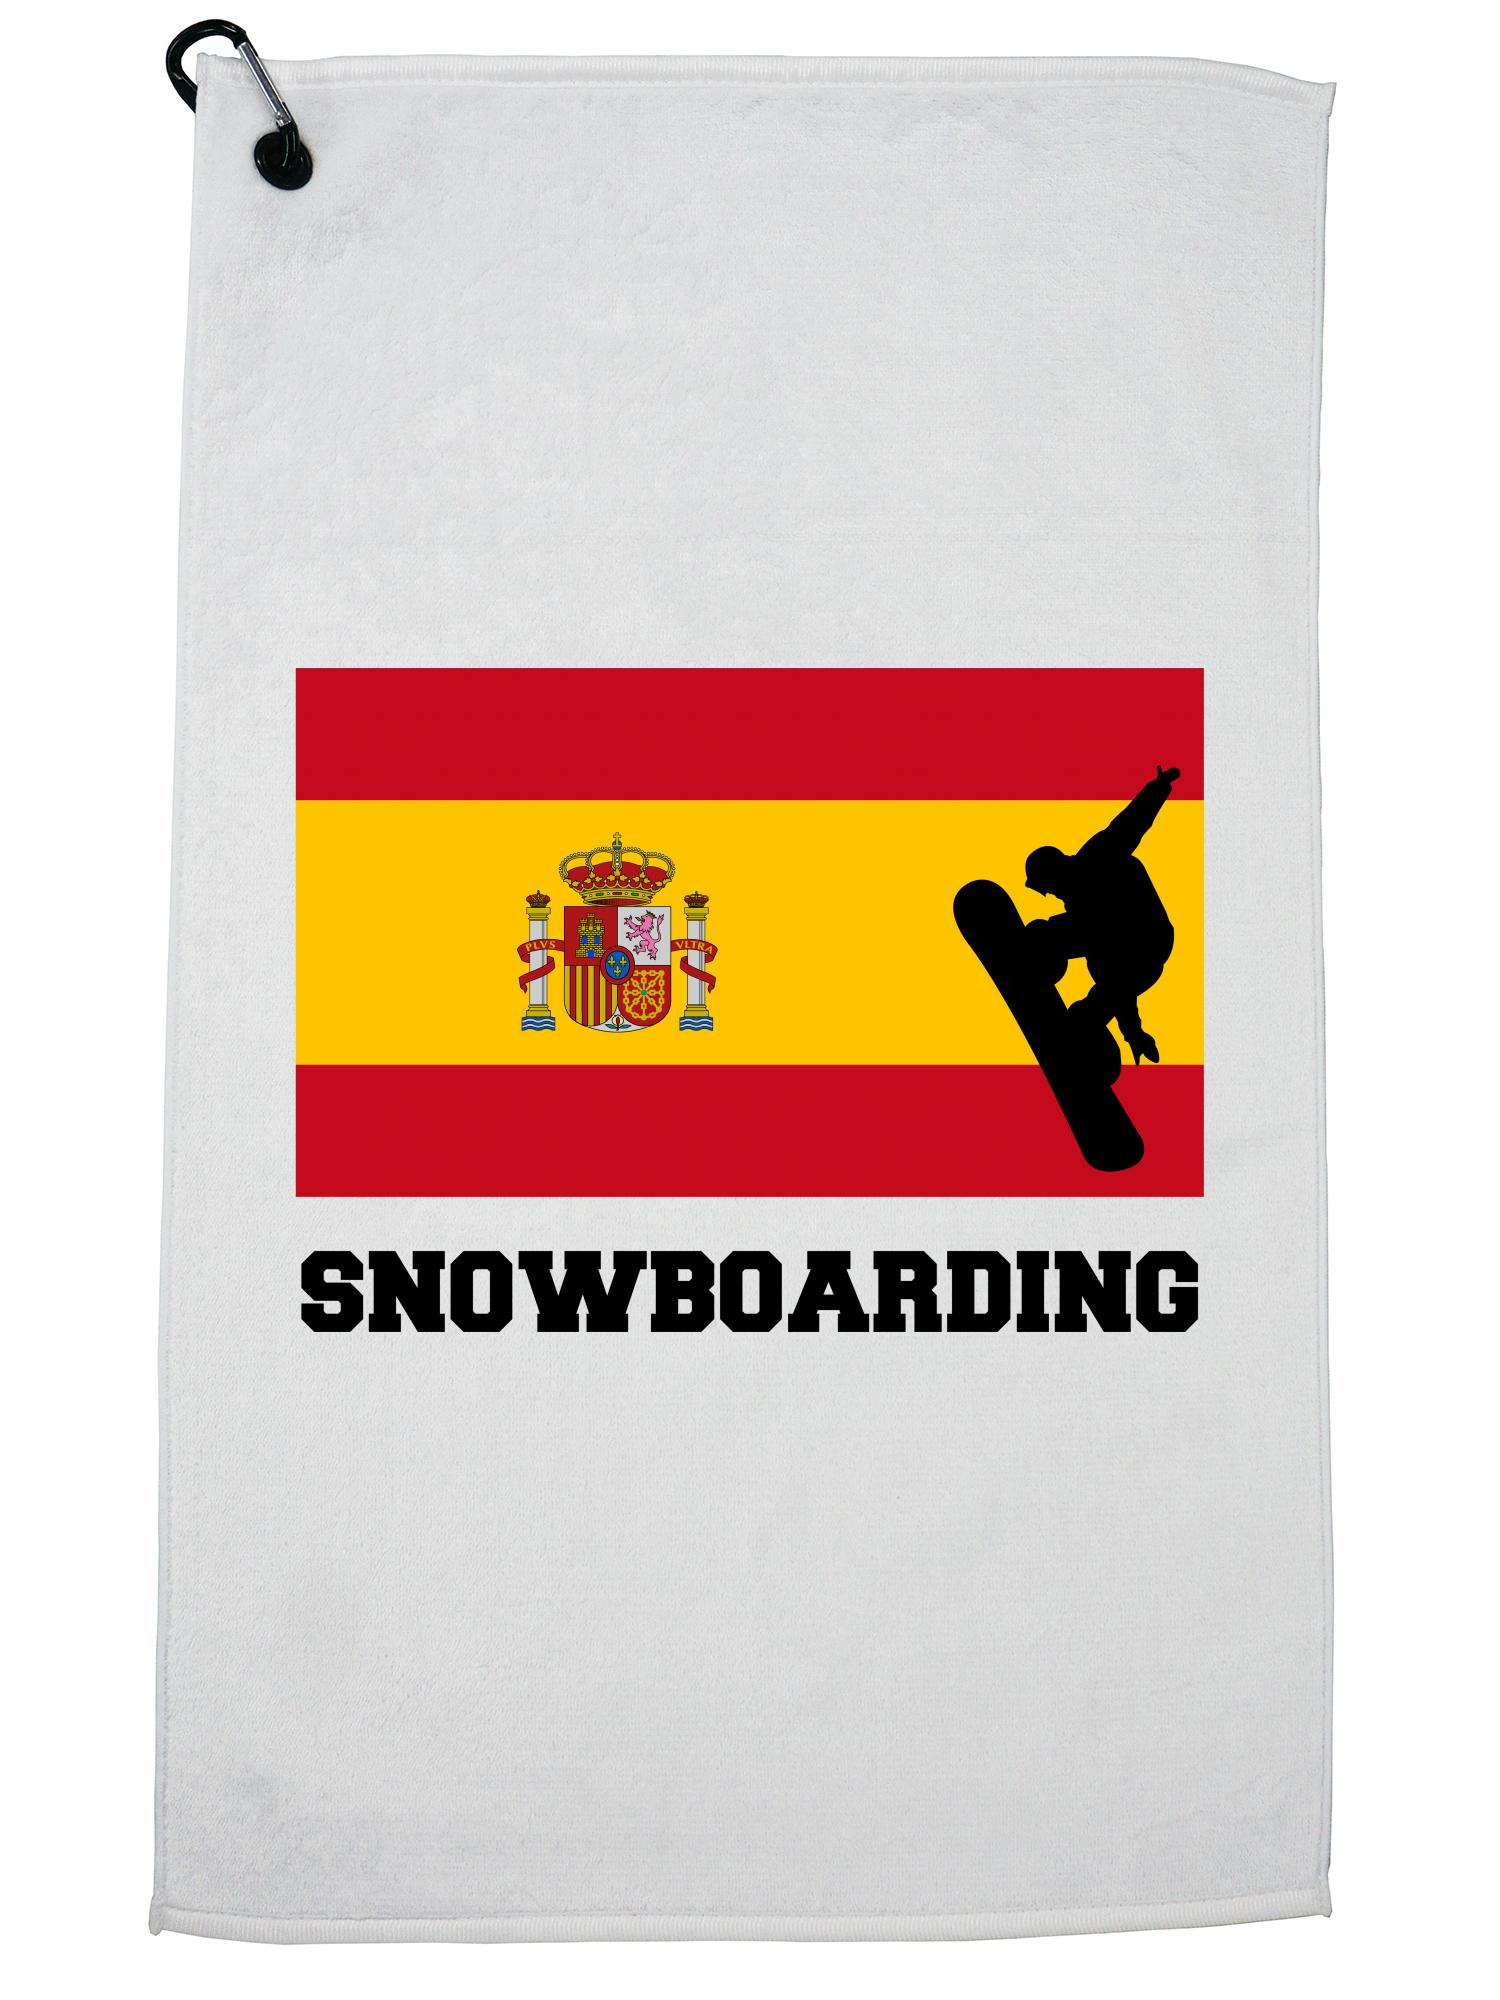 Spain Olympic Snowboarding Flag Silhouette Golf Towel with Carabiner Clip by Hollywood Thread